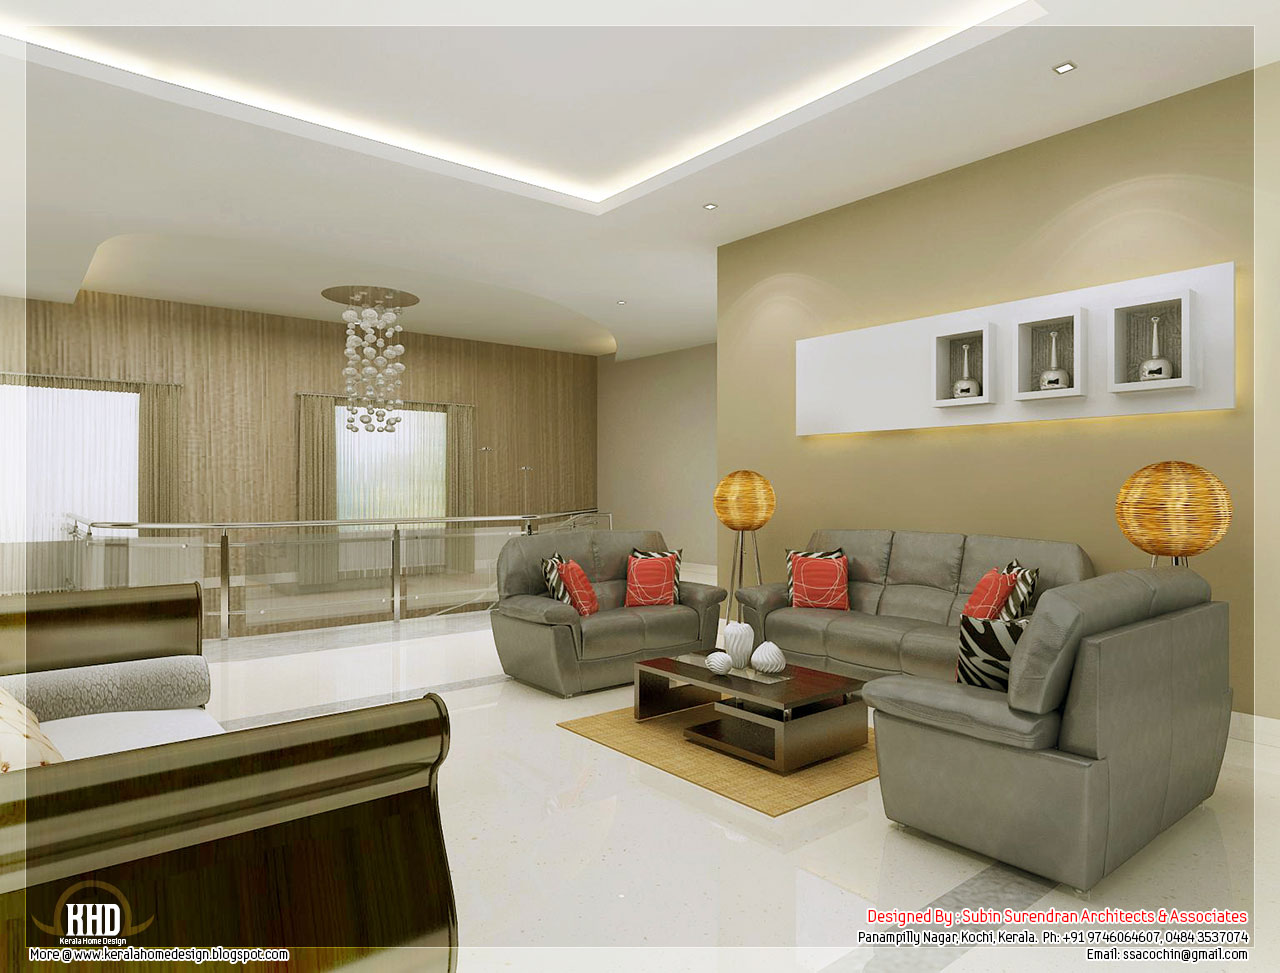 Awesome 3d interior renderings house design plans for Sitting room interior design